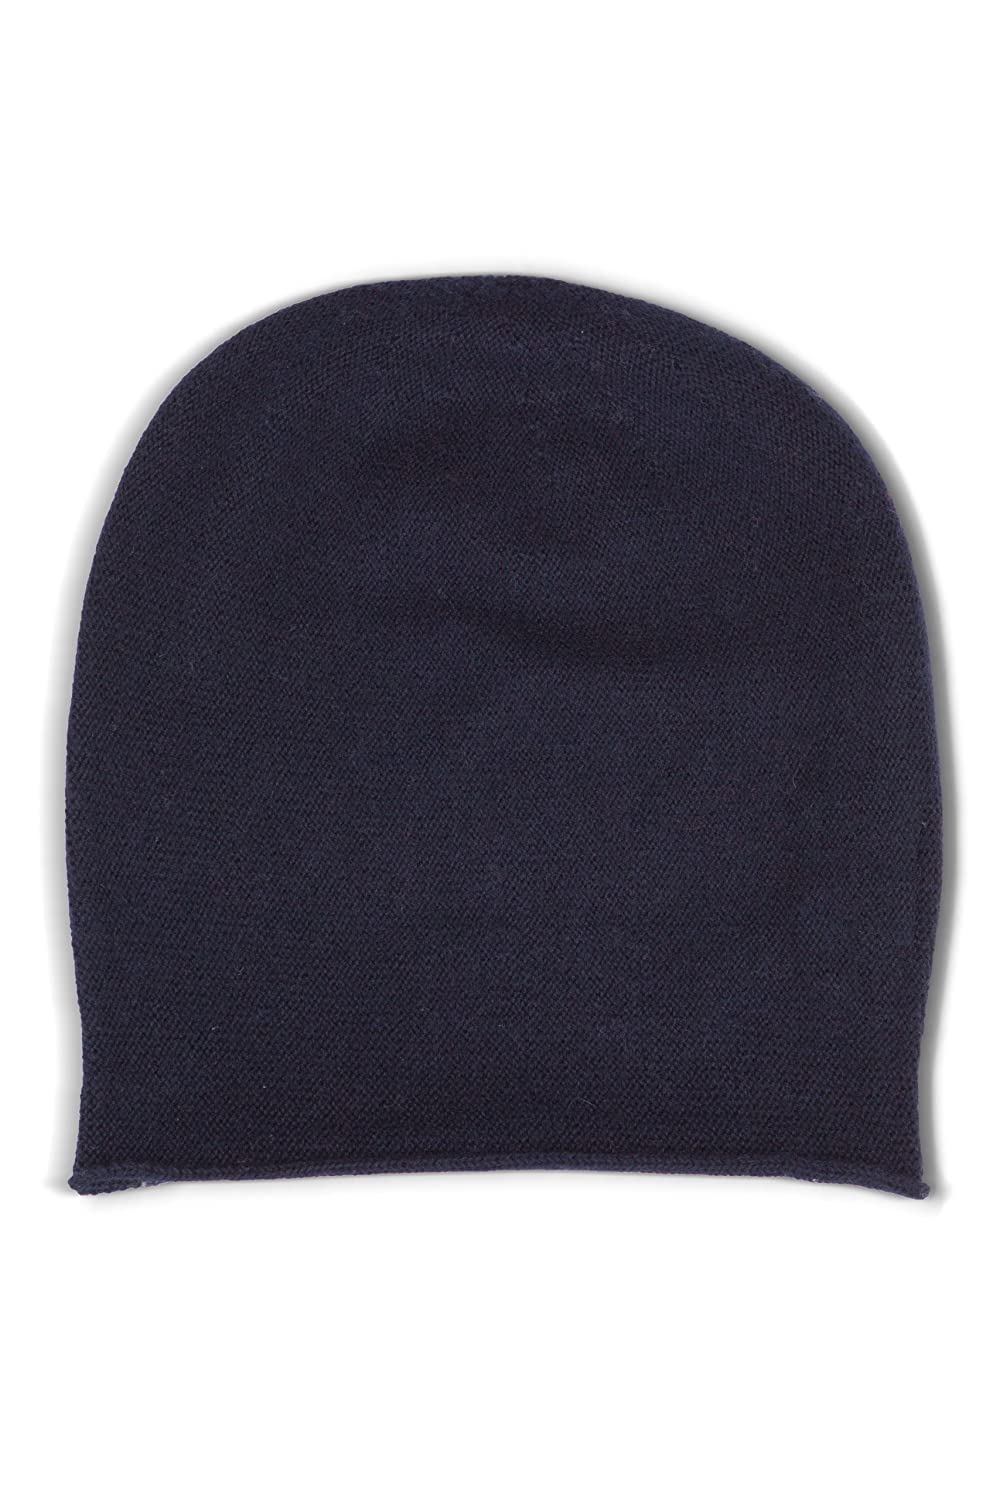 68305a8f5 Fishers Finery Men's 100% Pure Cashmere Slouchy Beanie